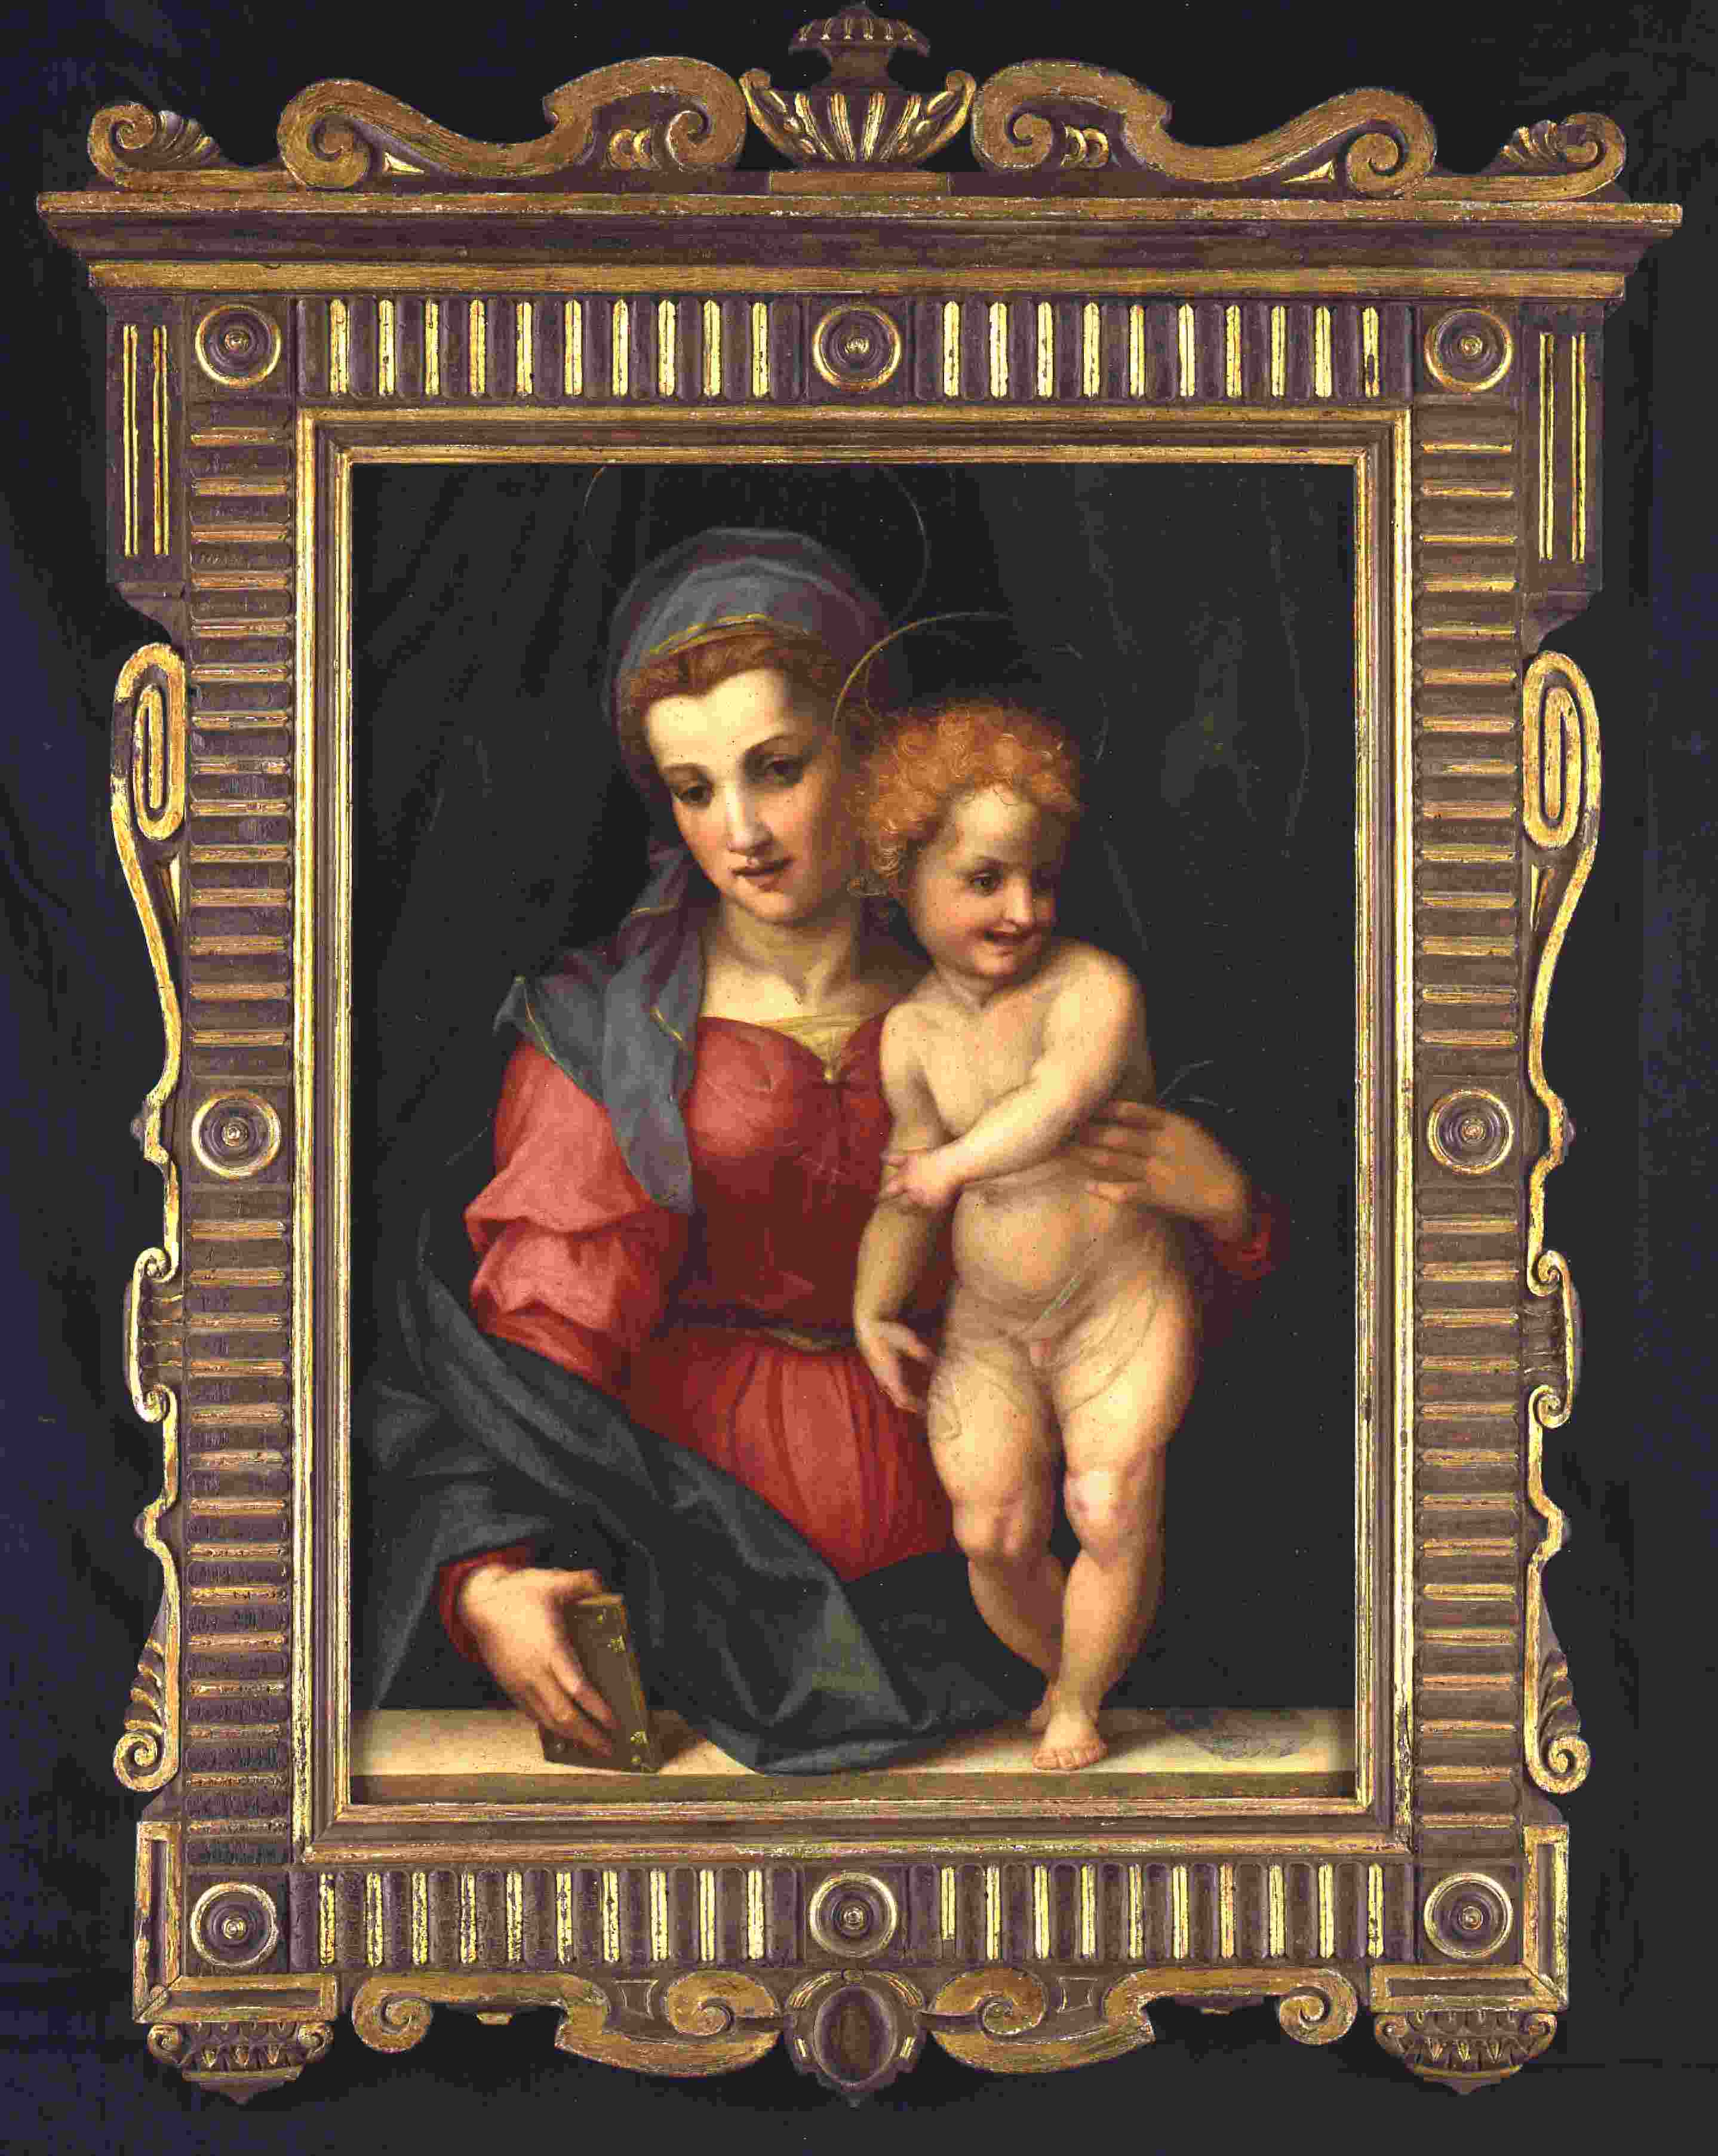 Virgin and Child c. 1516